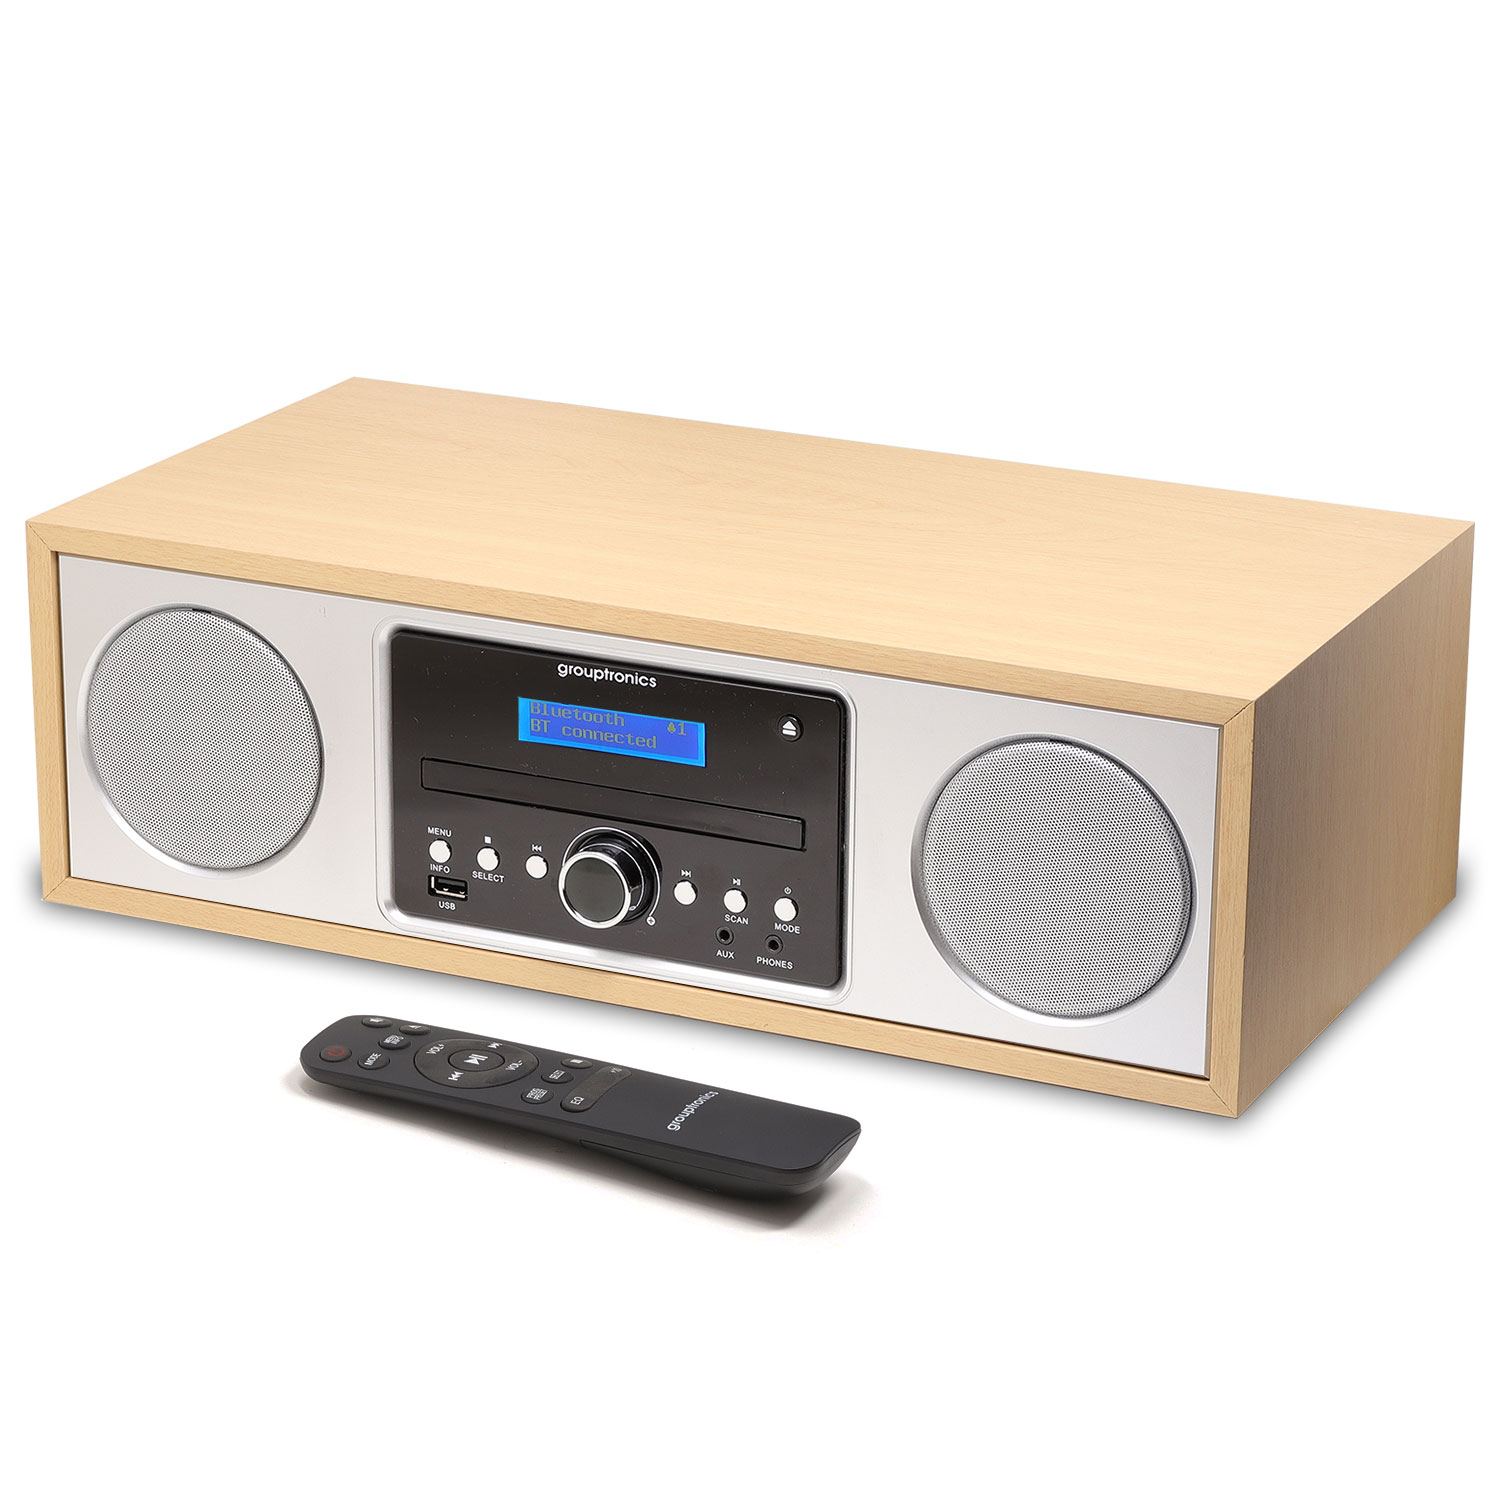 Grouptronics Gtmc A1 Dab Dab Compact All In One Stereo